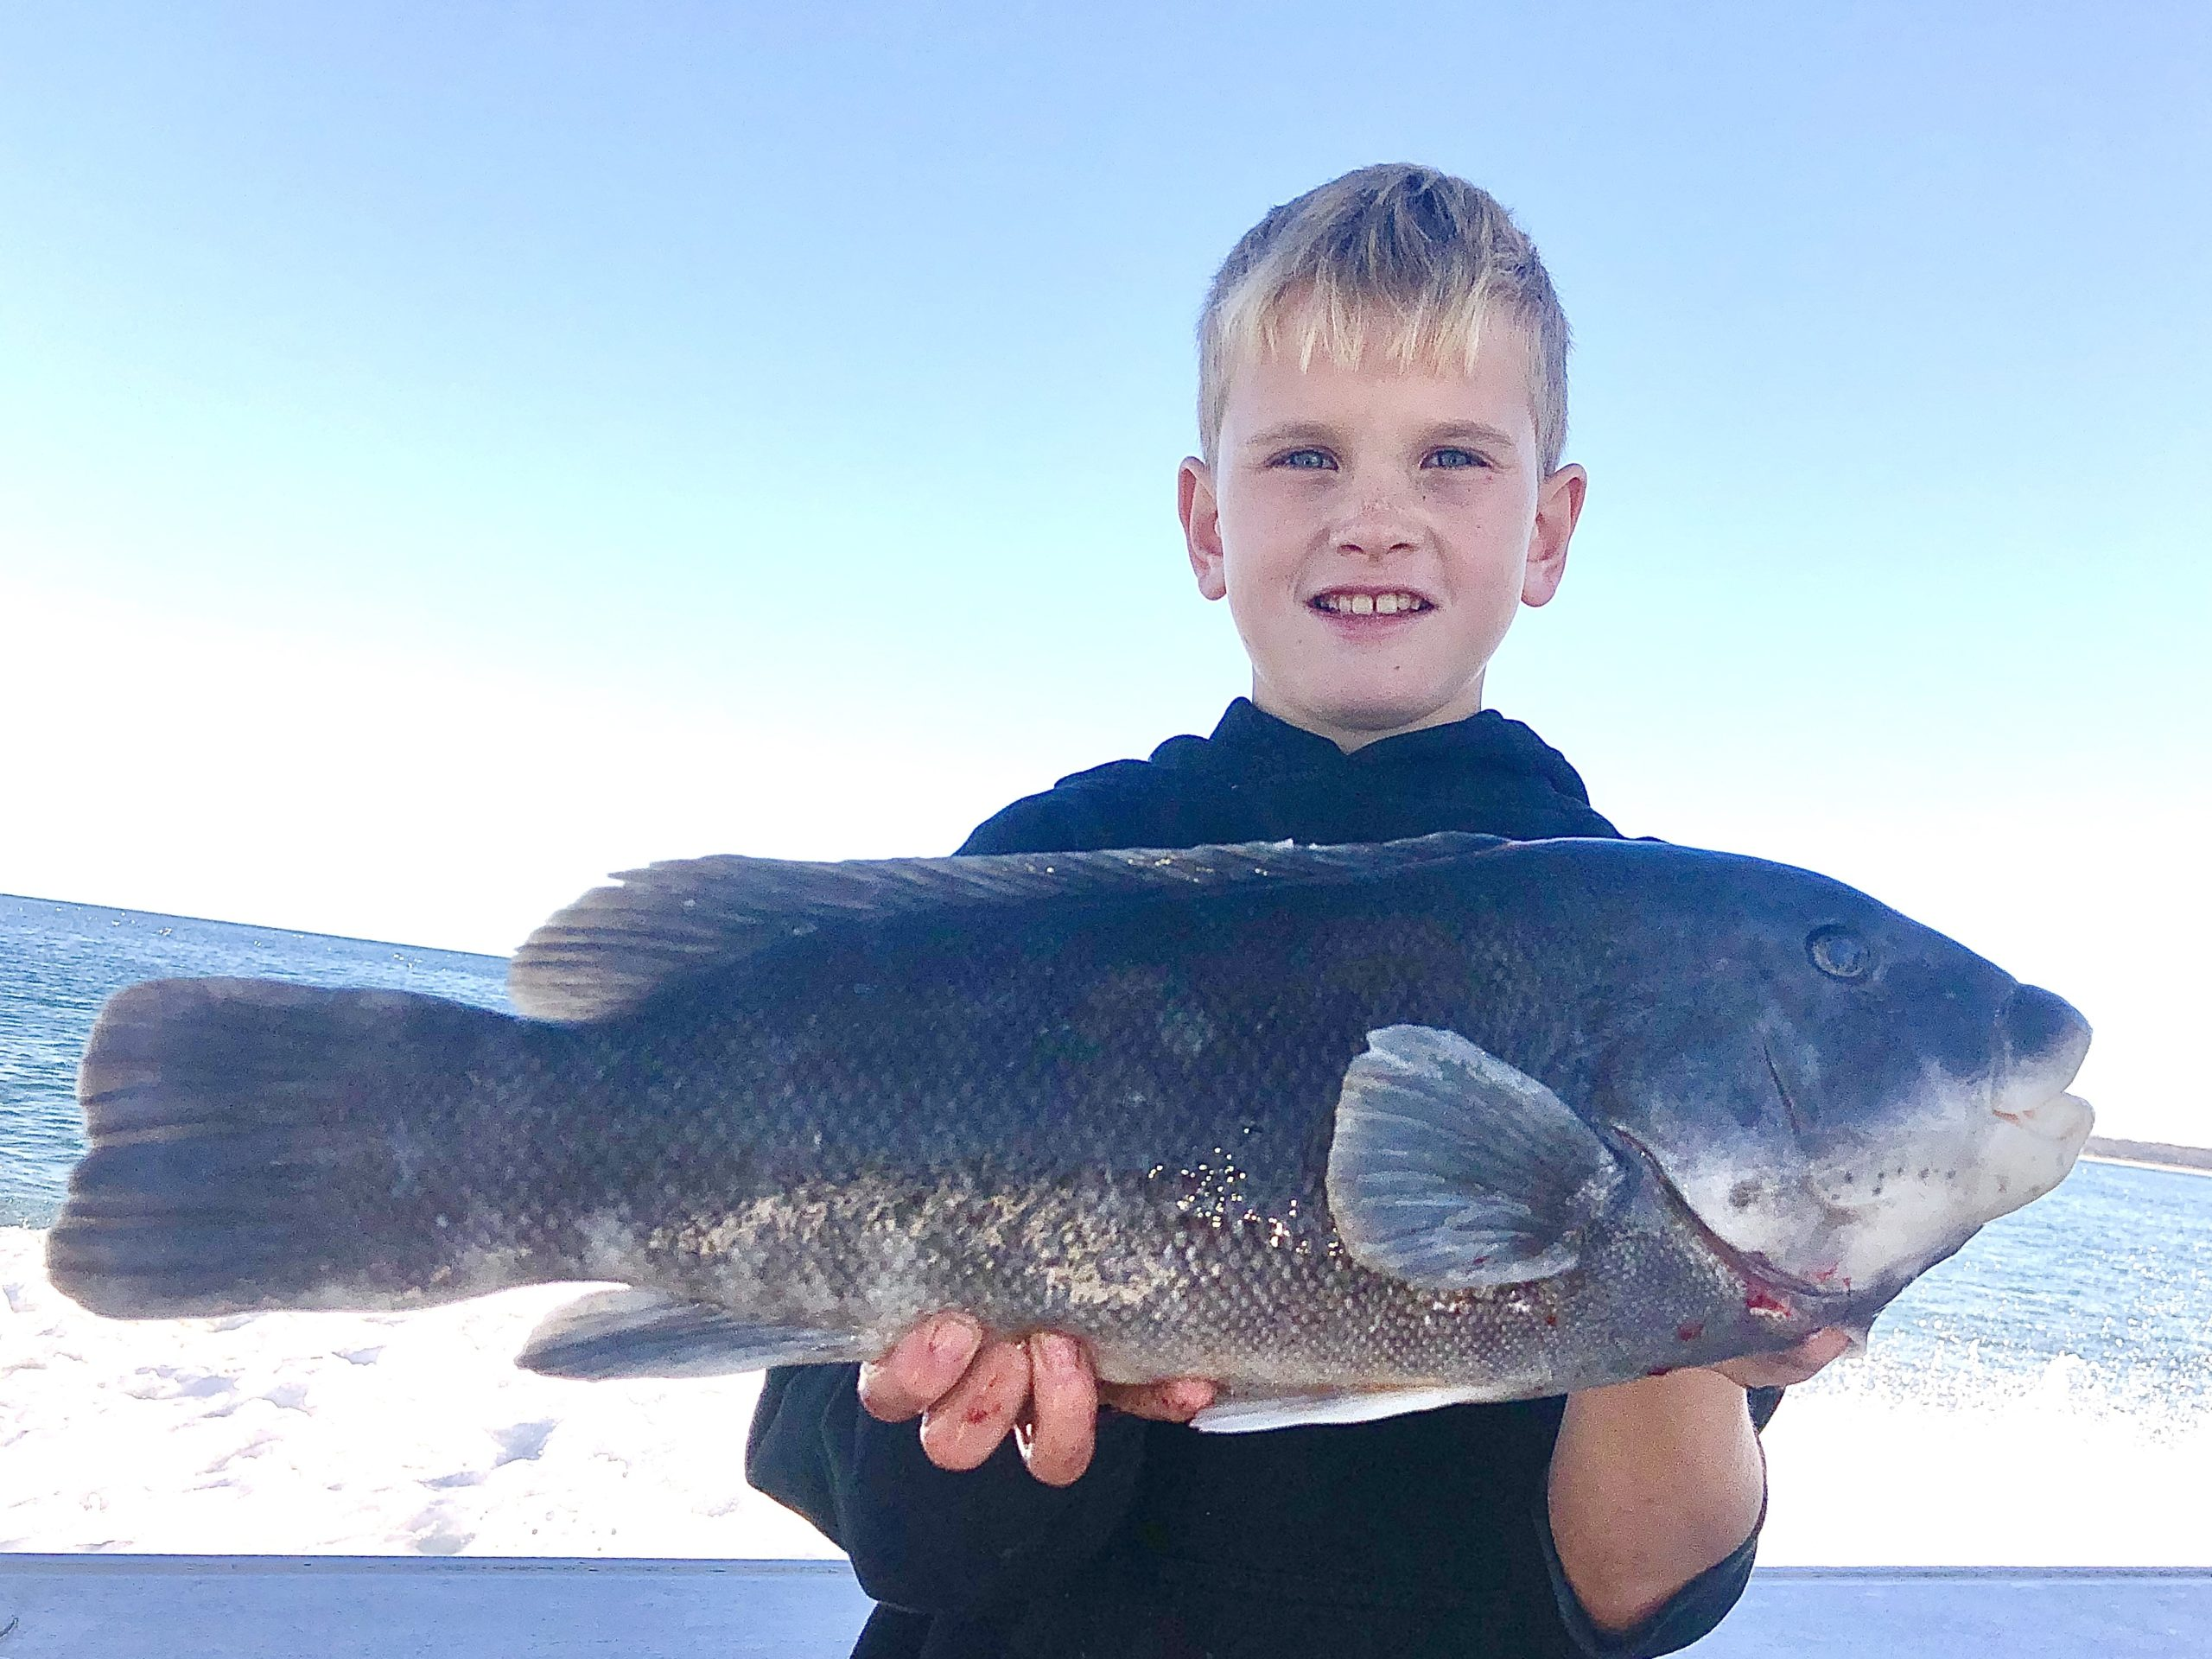 Matty Dettleff with a big Fishers Island blackfish caught aboard the Flying Dutchman.